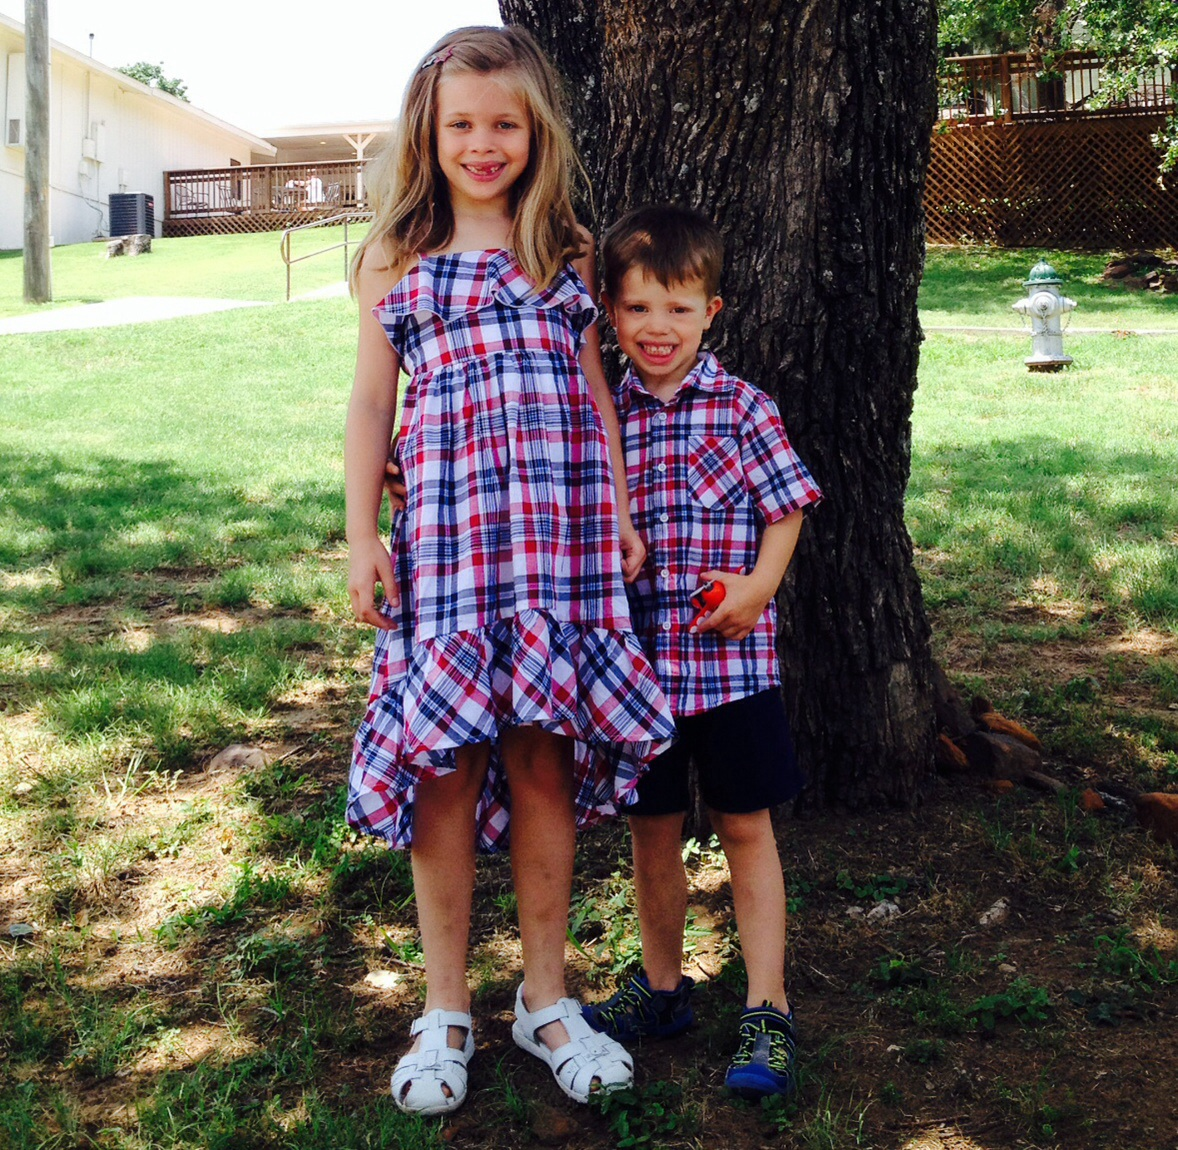 Family Garage Sale and Lemonade Stand Supports Walk for Autism